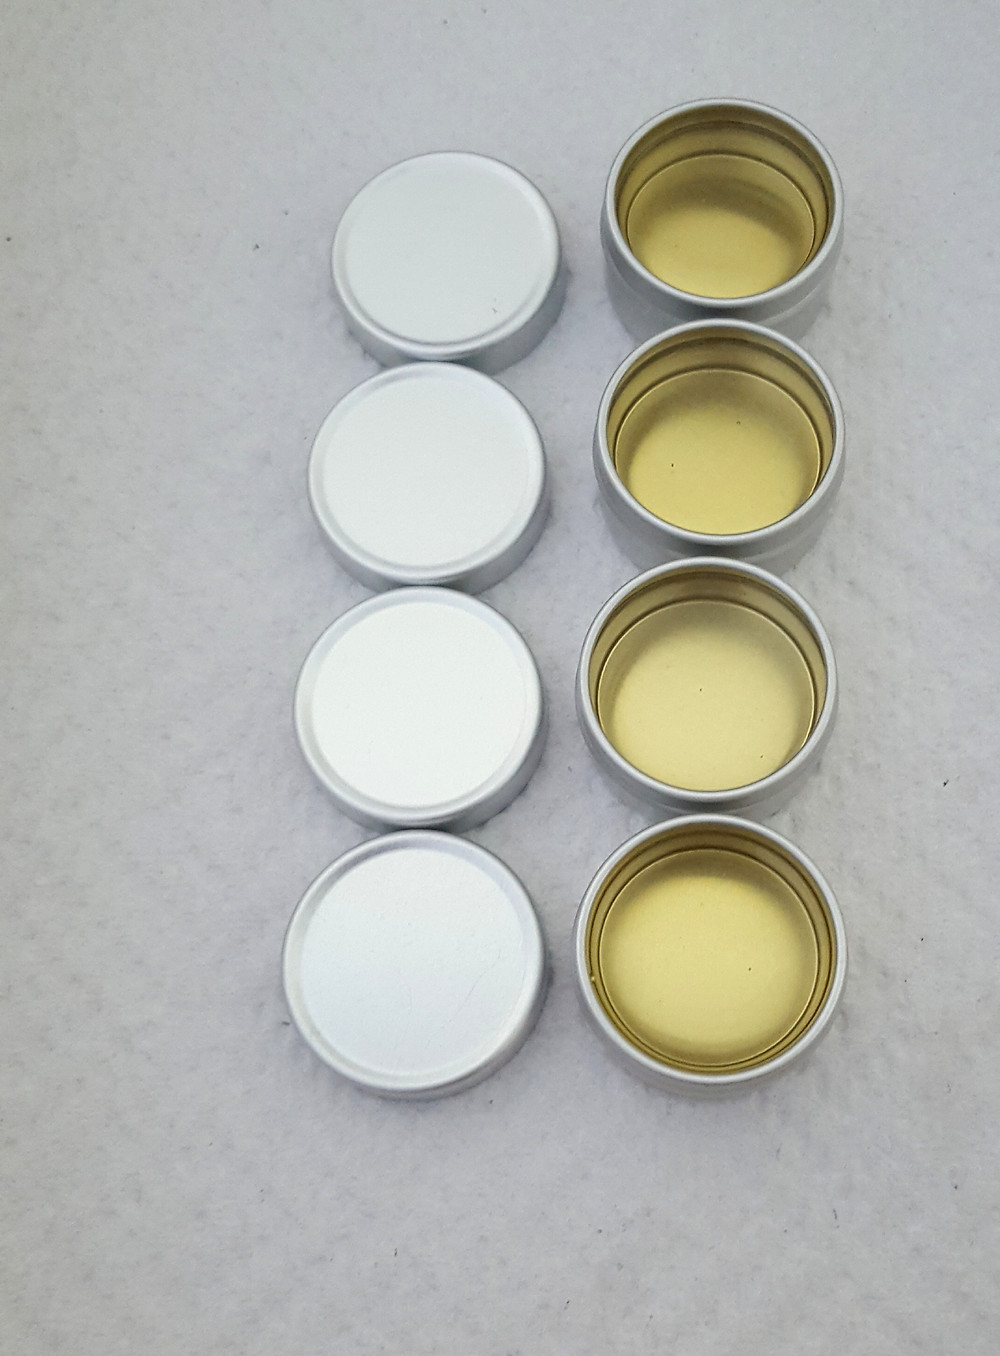 Just poured balms ready for curing. Little pools of golden light.